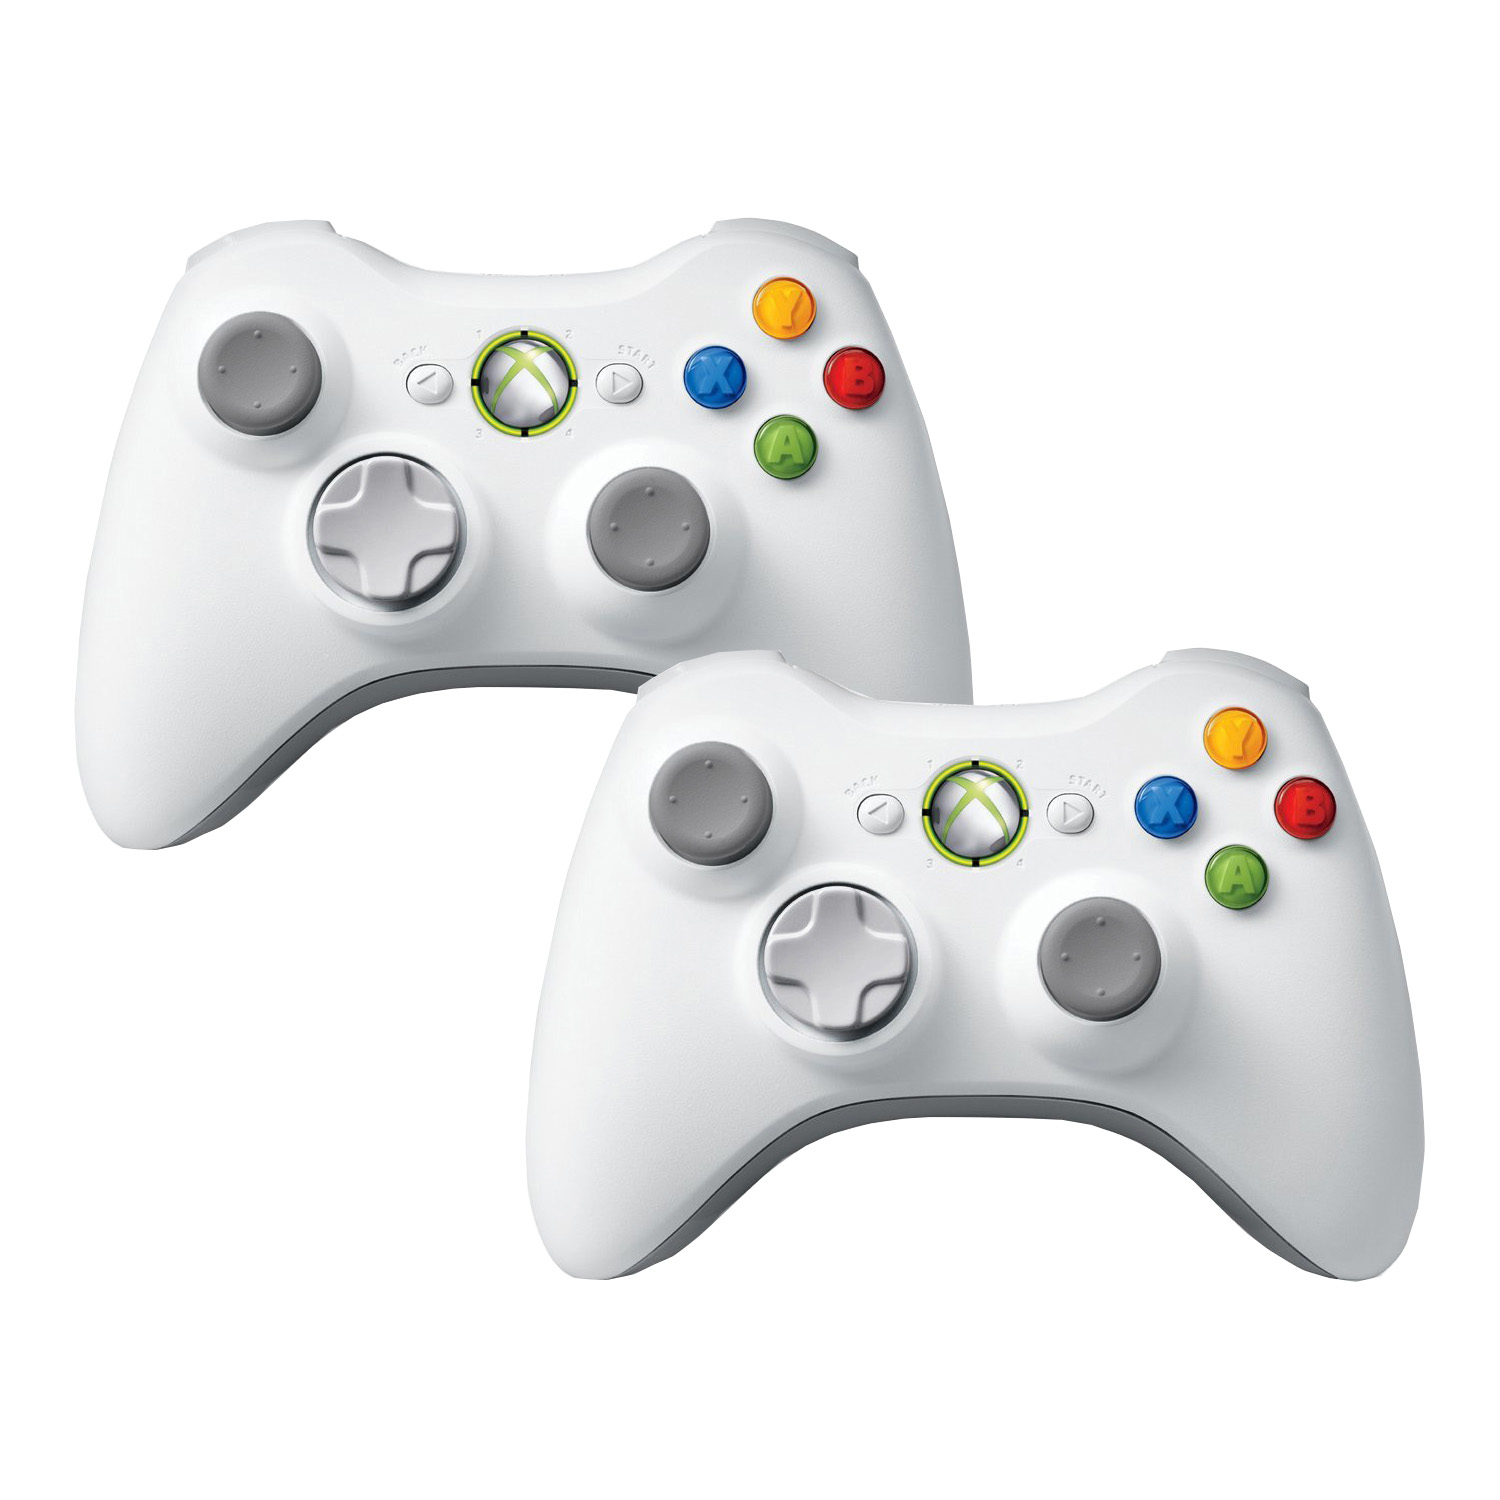 Refurbished 2 Pack Microsoft Official Xbox 360 Wireless Remote Controller - White